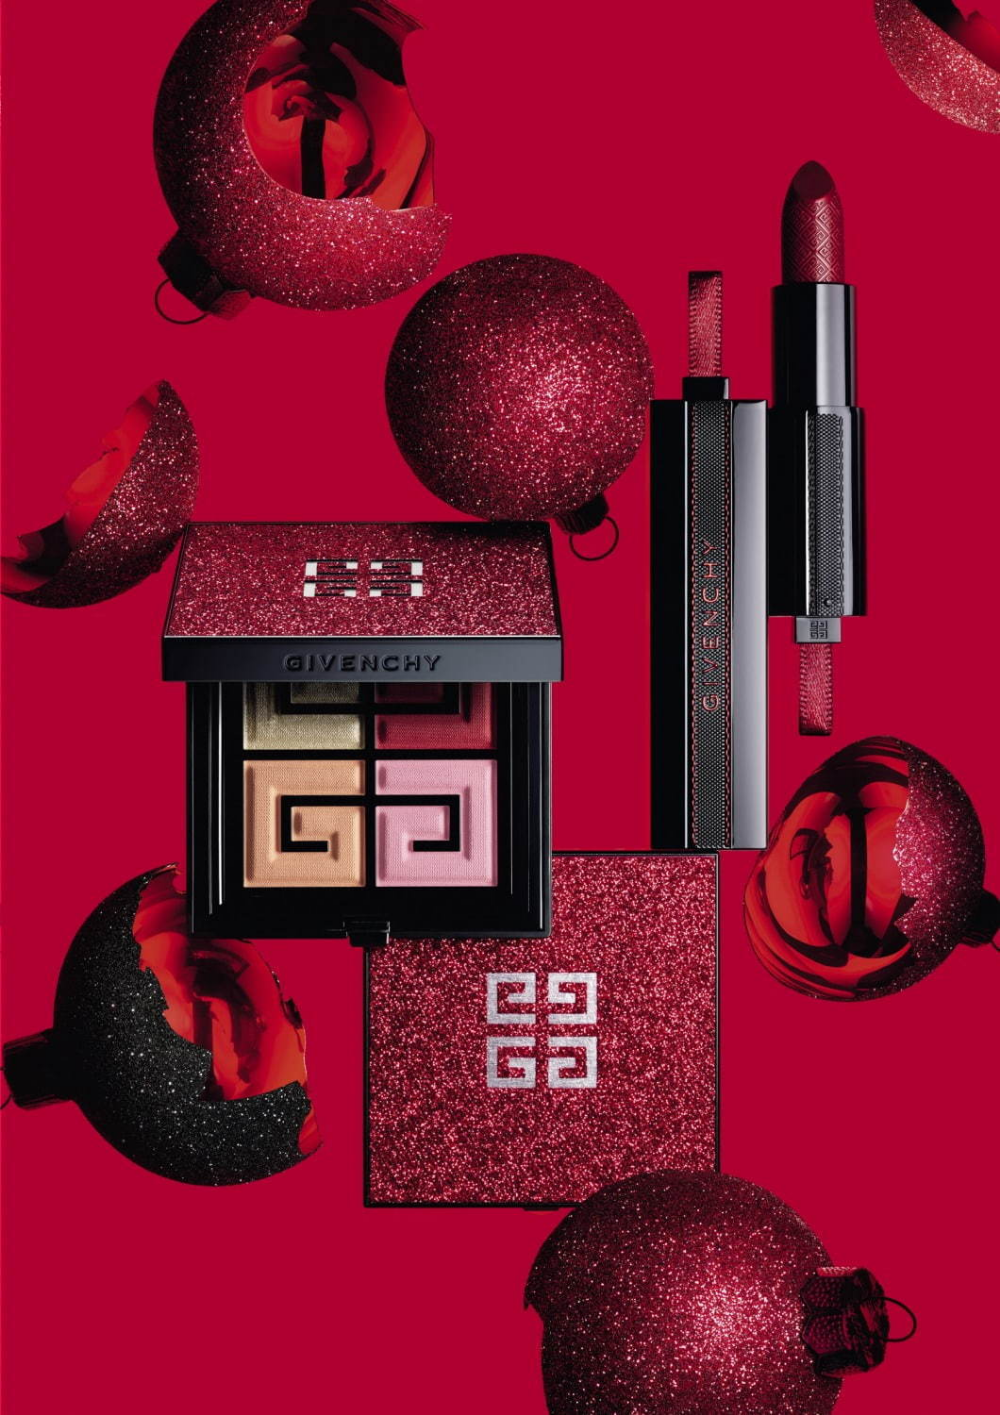 Givenchy Christmas 2020 Givenchy Christmas Thrills 2019 in 2020 | Makeup collection